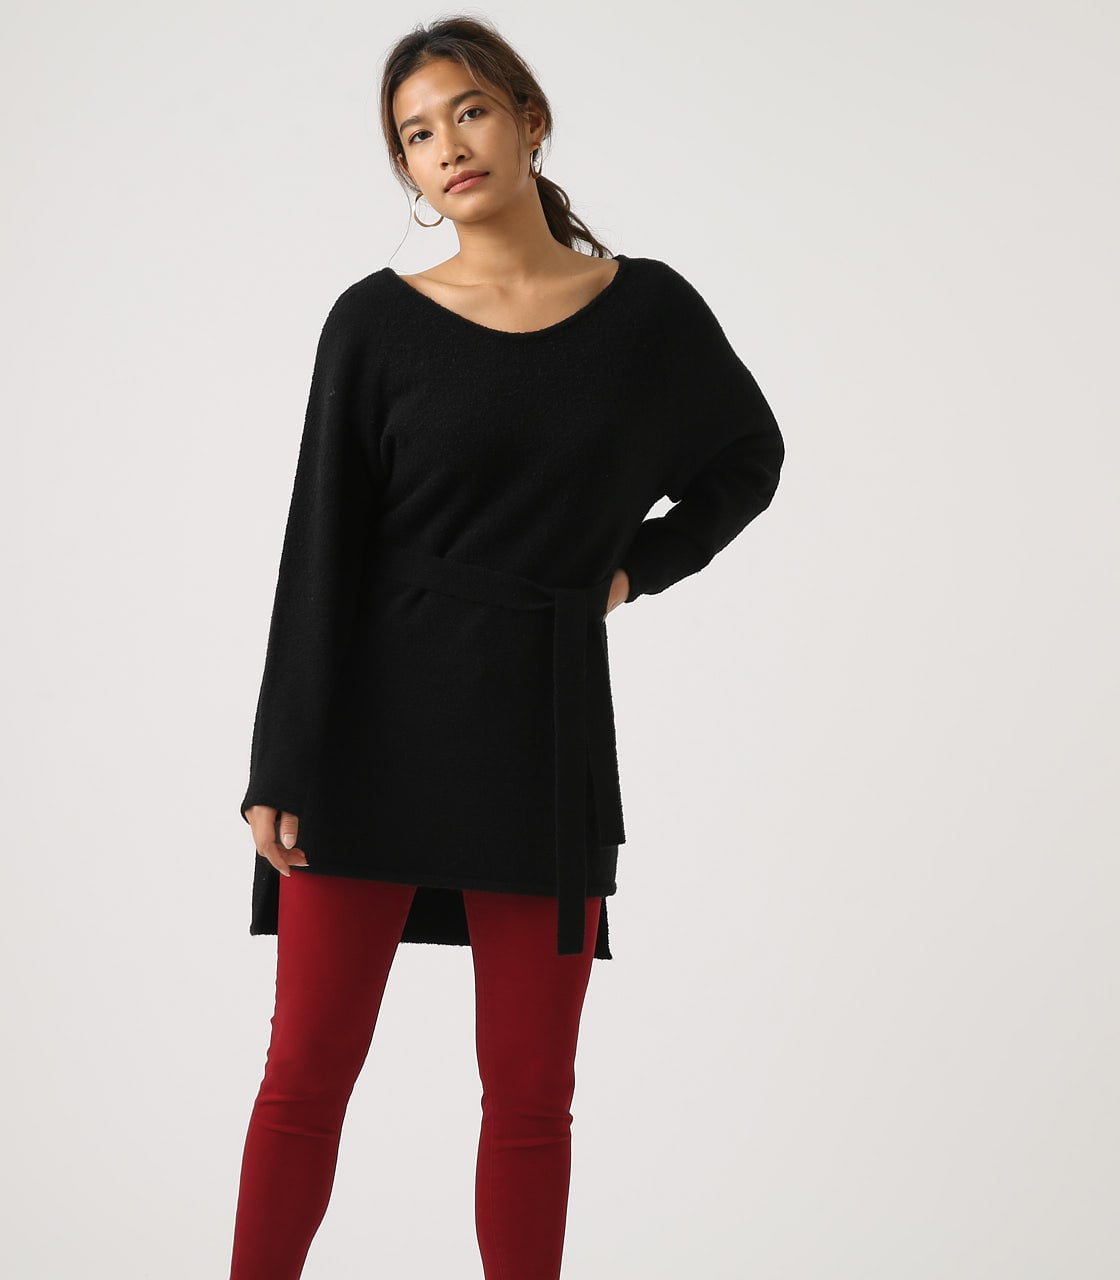 BELT SET V NECK KNIT TUNIC 詳細画像 BLK 1